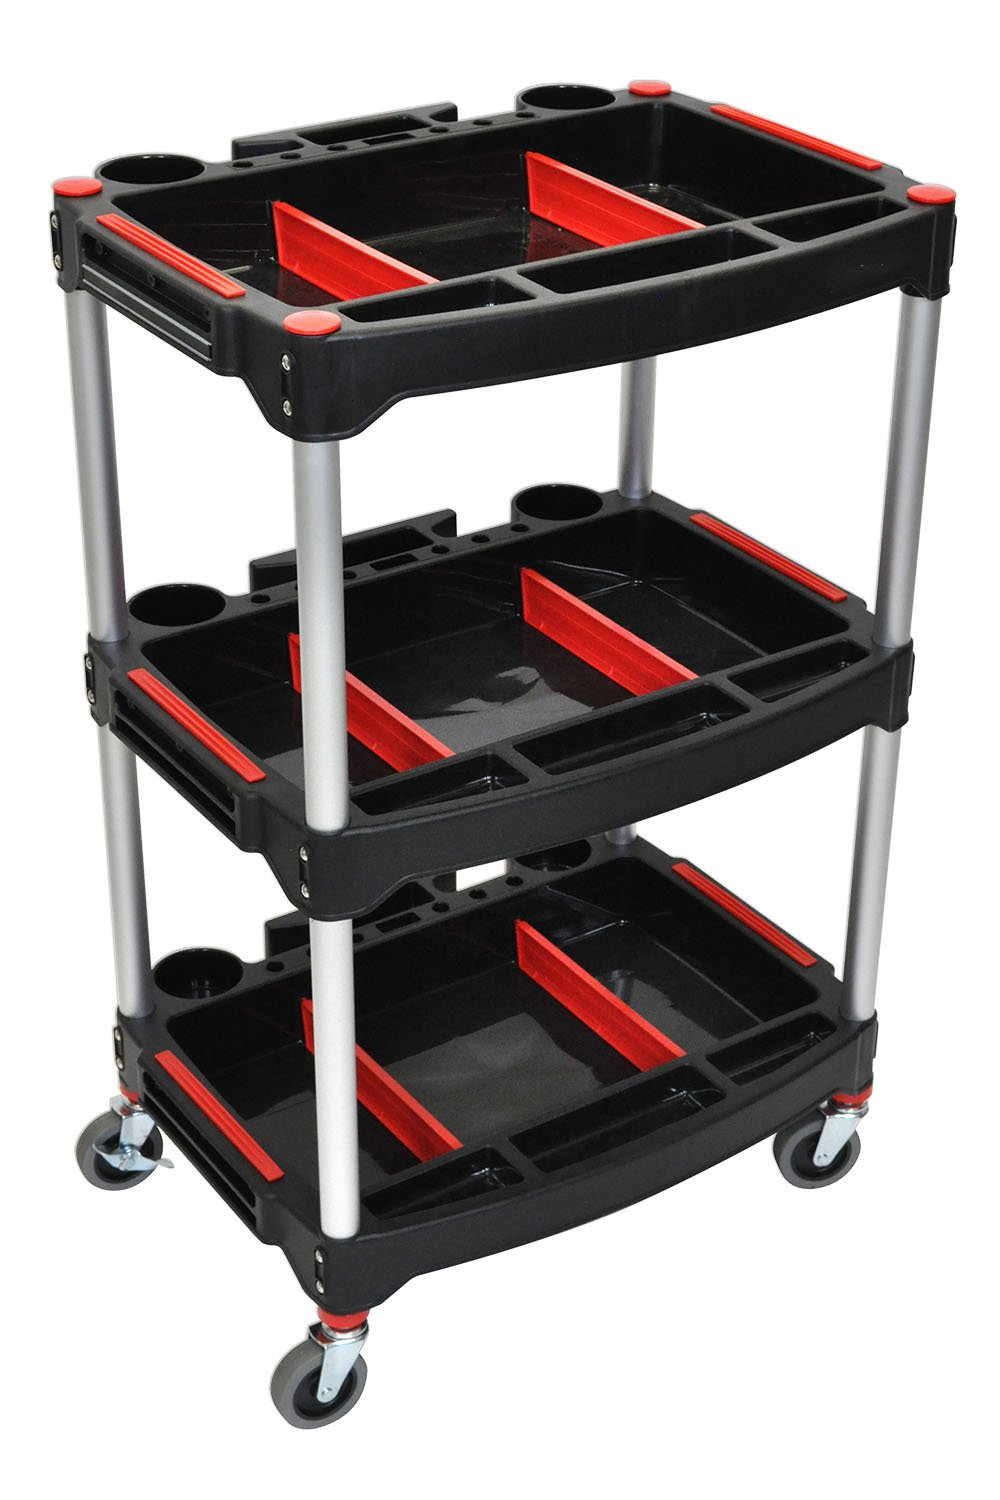 Offex Rolling 3 Shelf Mechanics Tool Storage Utility Cart 3'' Casters - Red/Black